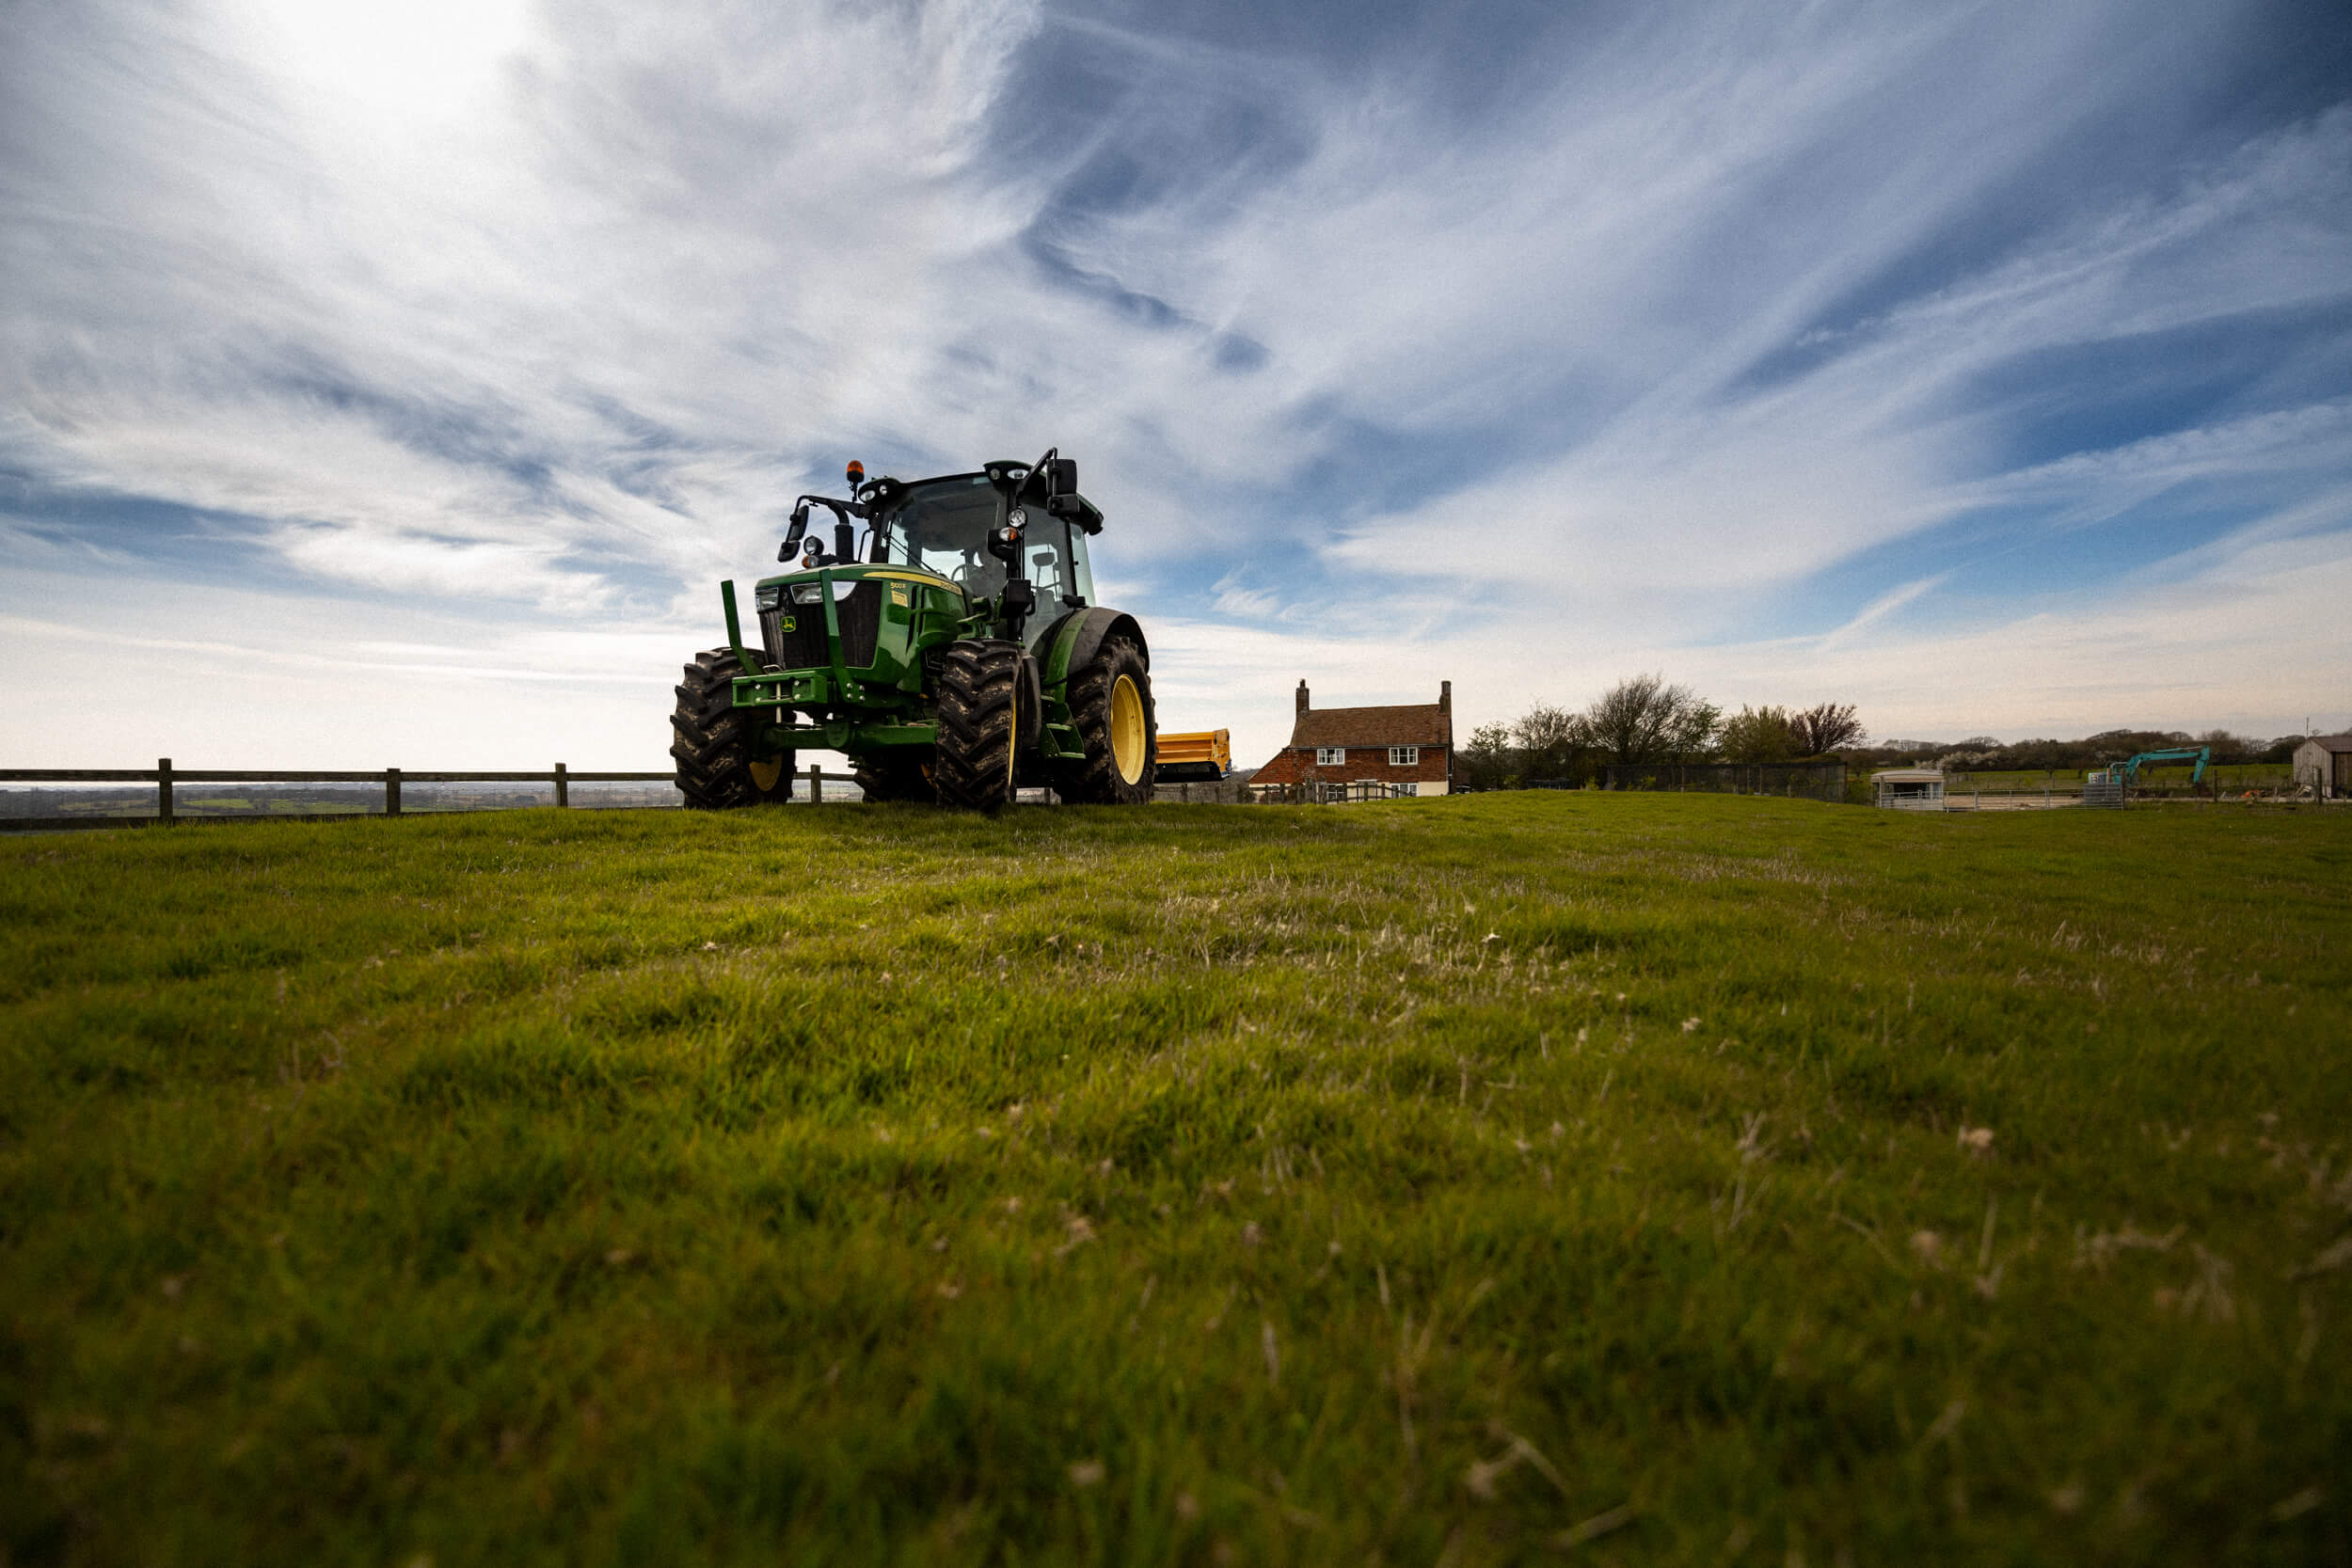 Tractor in the field at Coldharbour